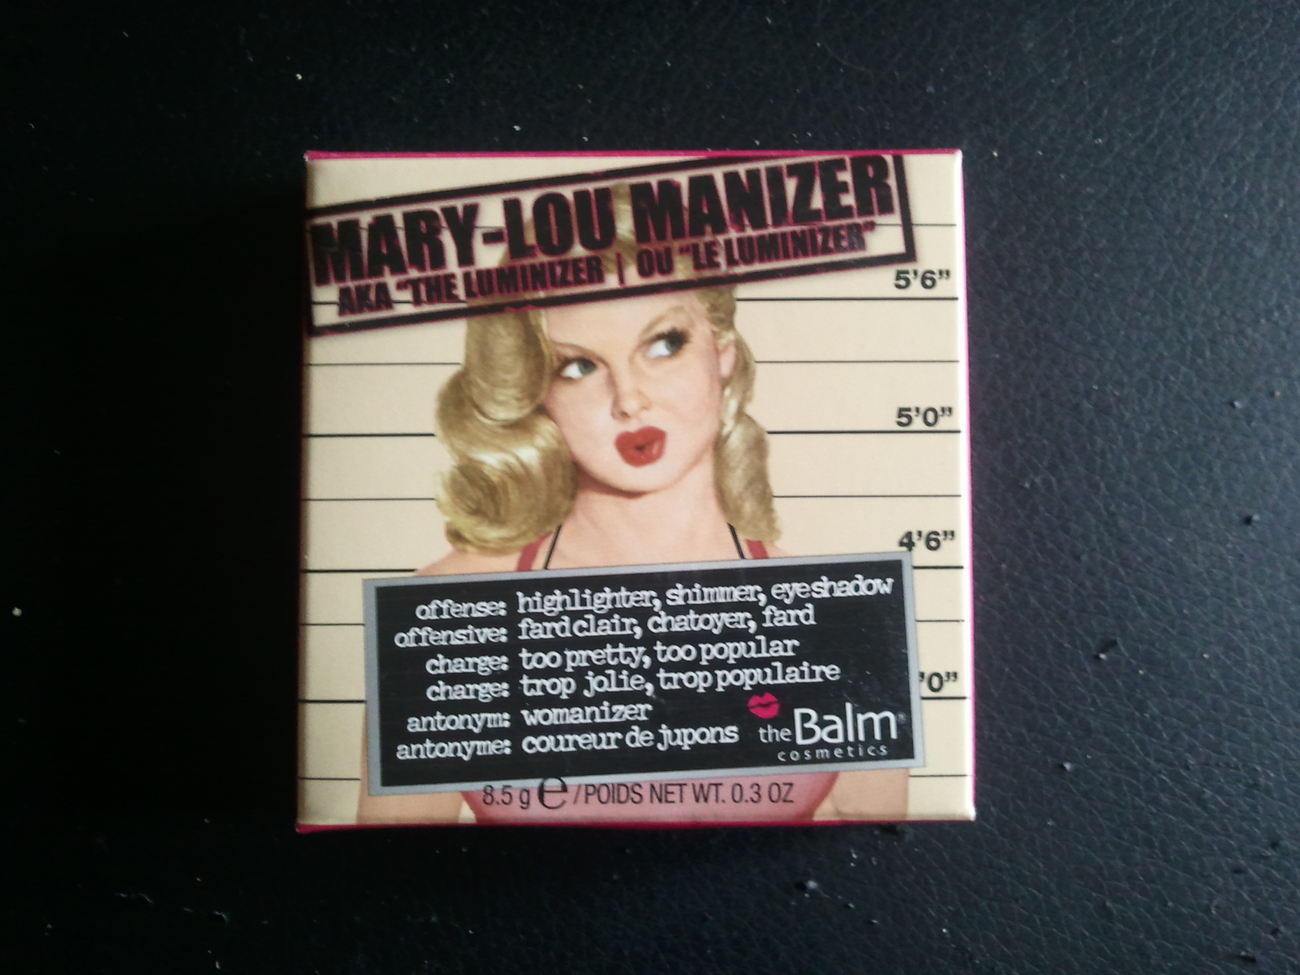 The Balm Mary-Lou Manizer Highlighter, Shimmer, Eyeshadow, 8.5g